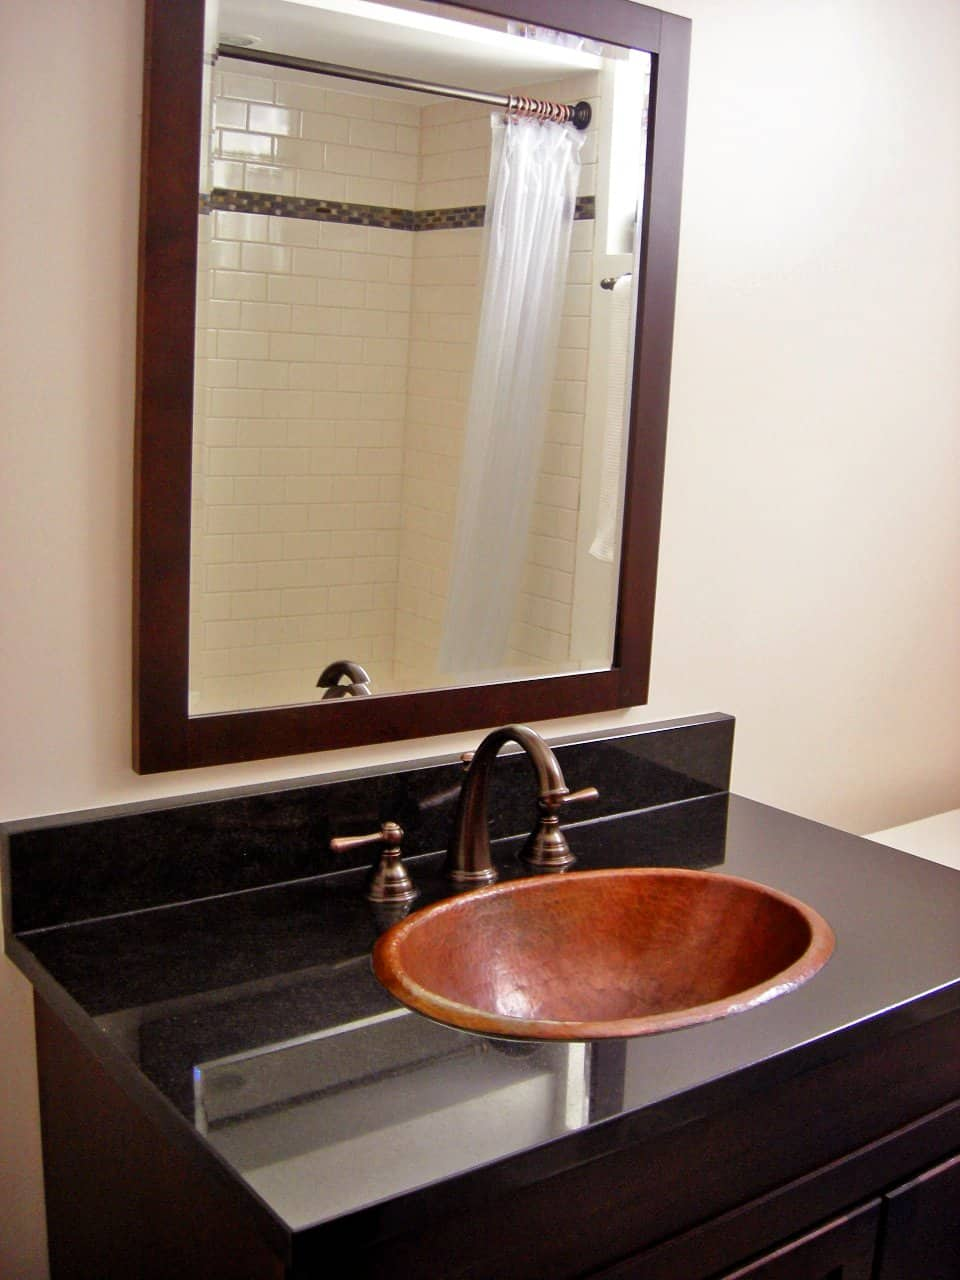 Superbe Bathroom Vanity With 17 Inch Oval Copper Sink And Black Counter